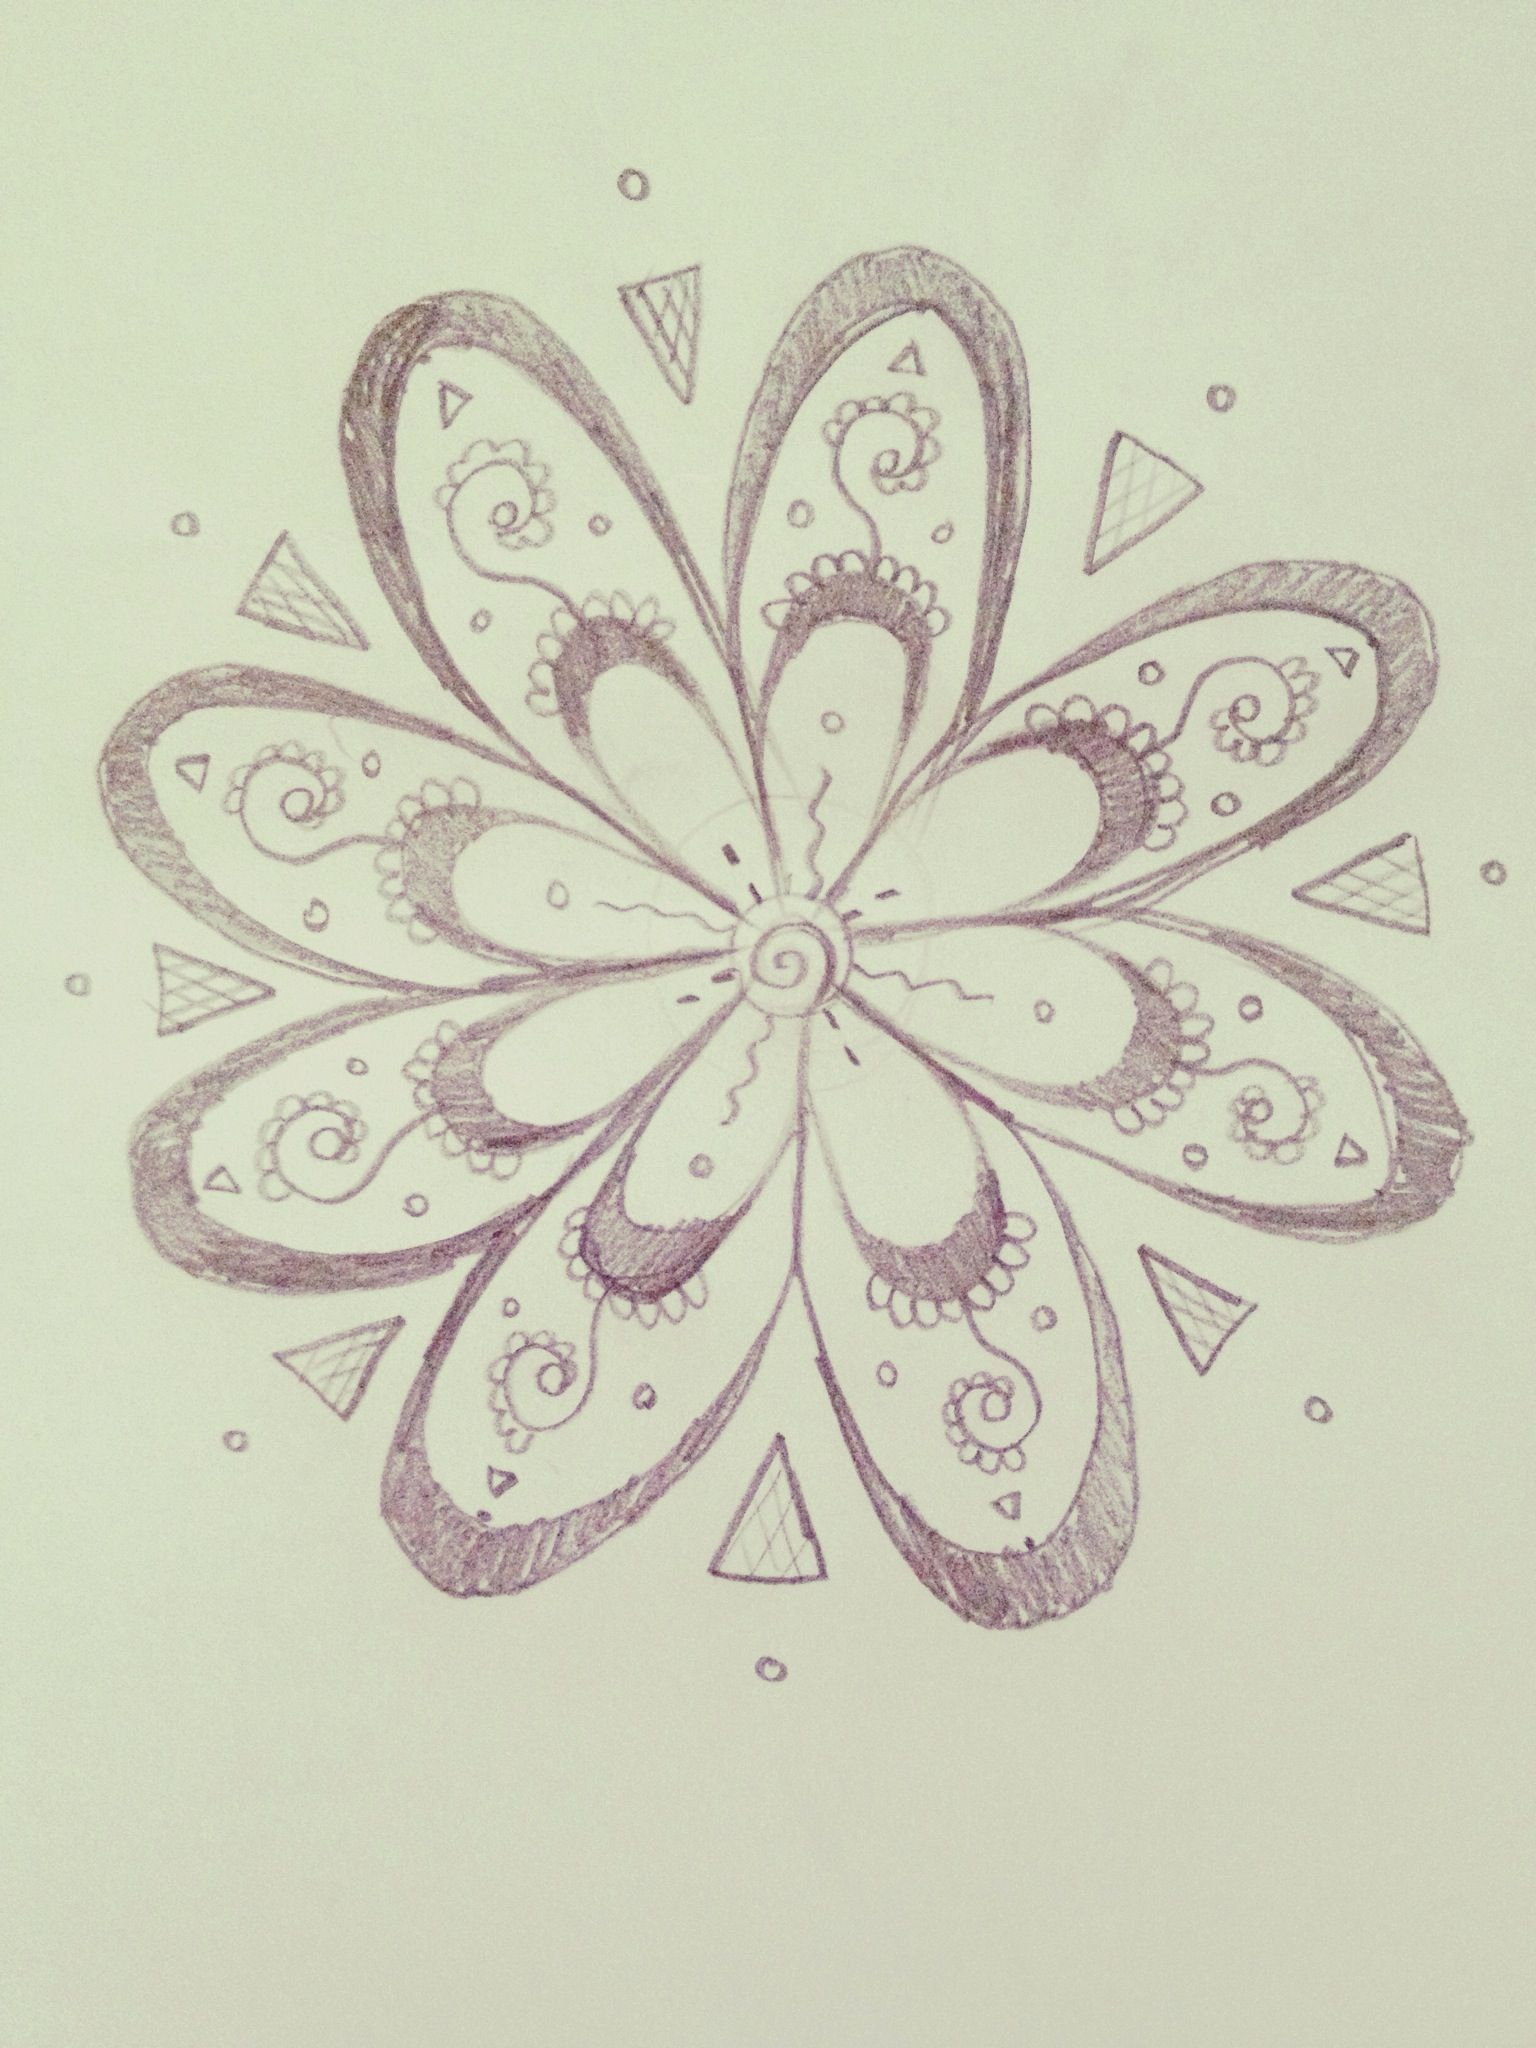 How To Draw An Intricate Abstract Flower Recipe Arts And Crafts